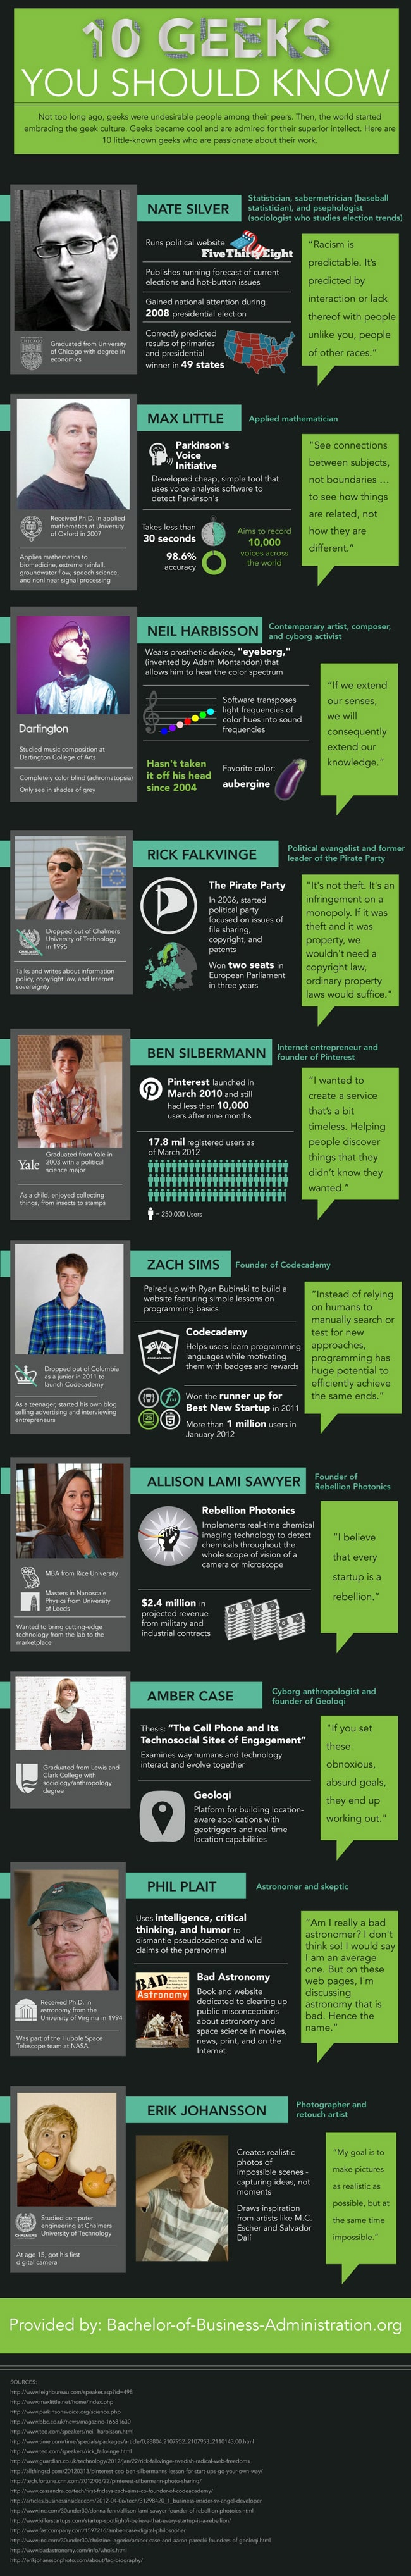 10-geeks-famous-unknown-infographic